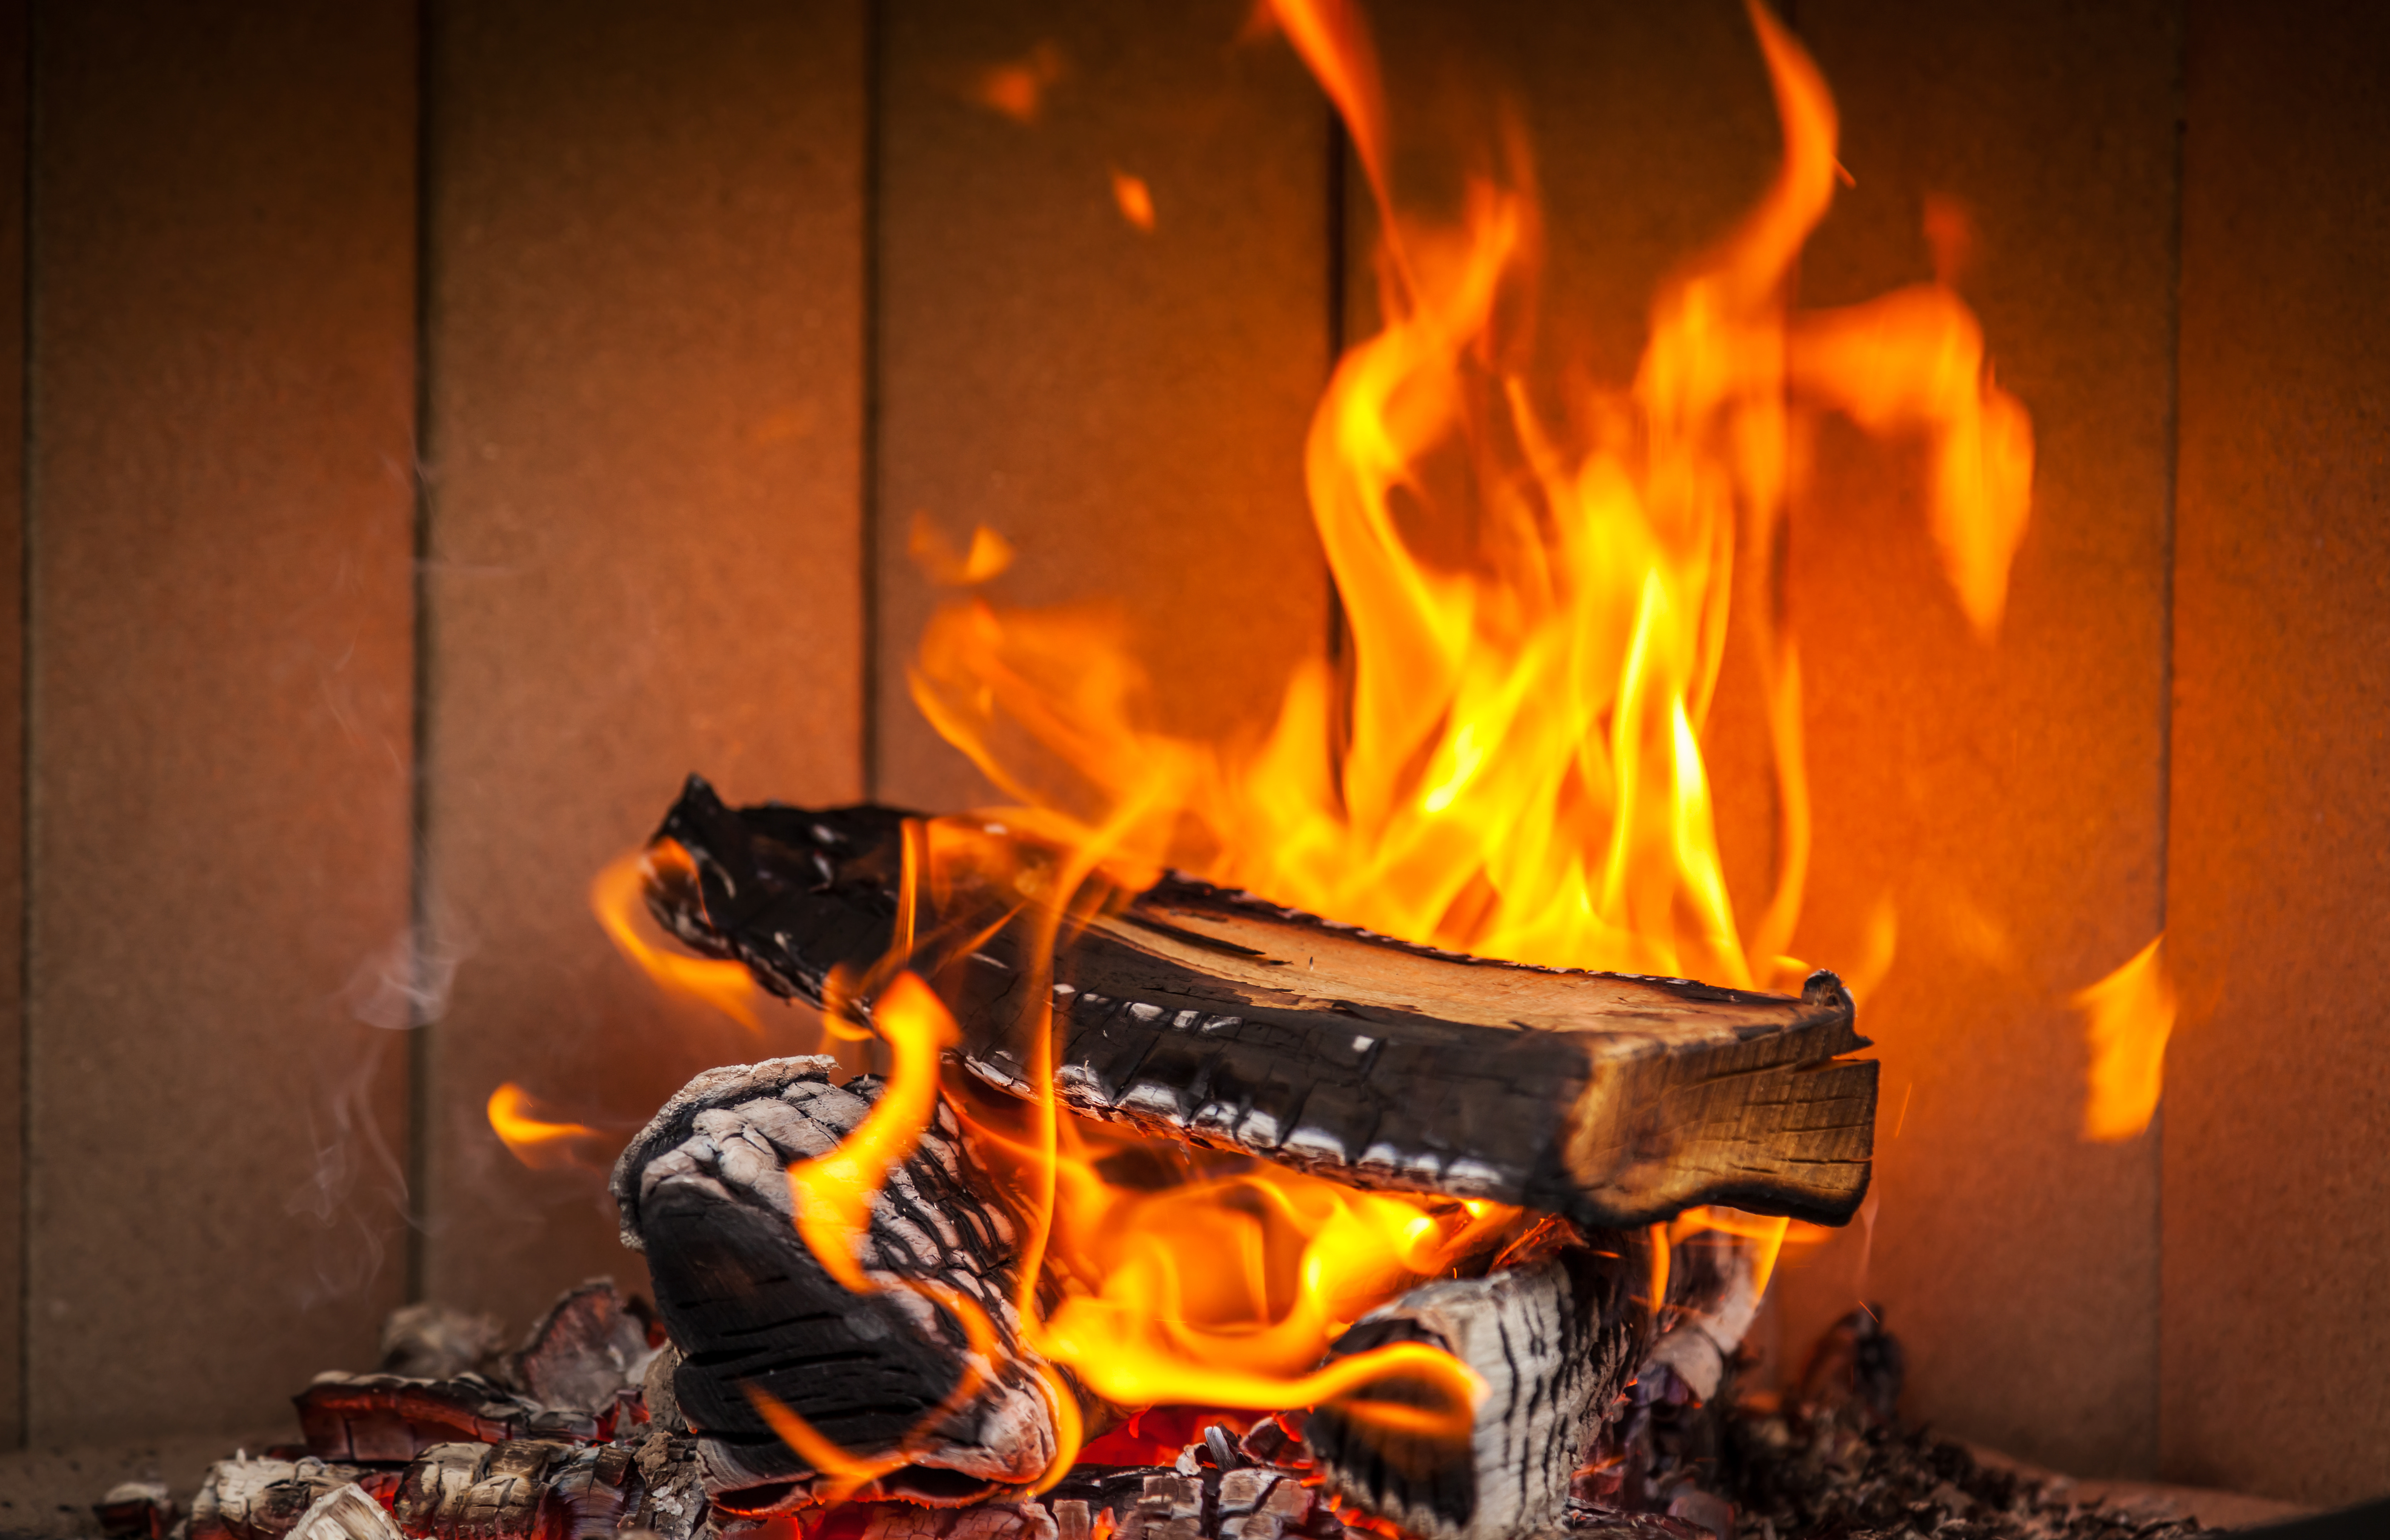 10 Fireplace Safety Tips To Stay Warm And Safe This Winter